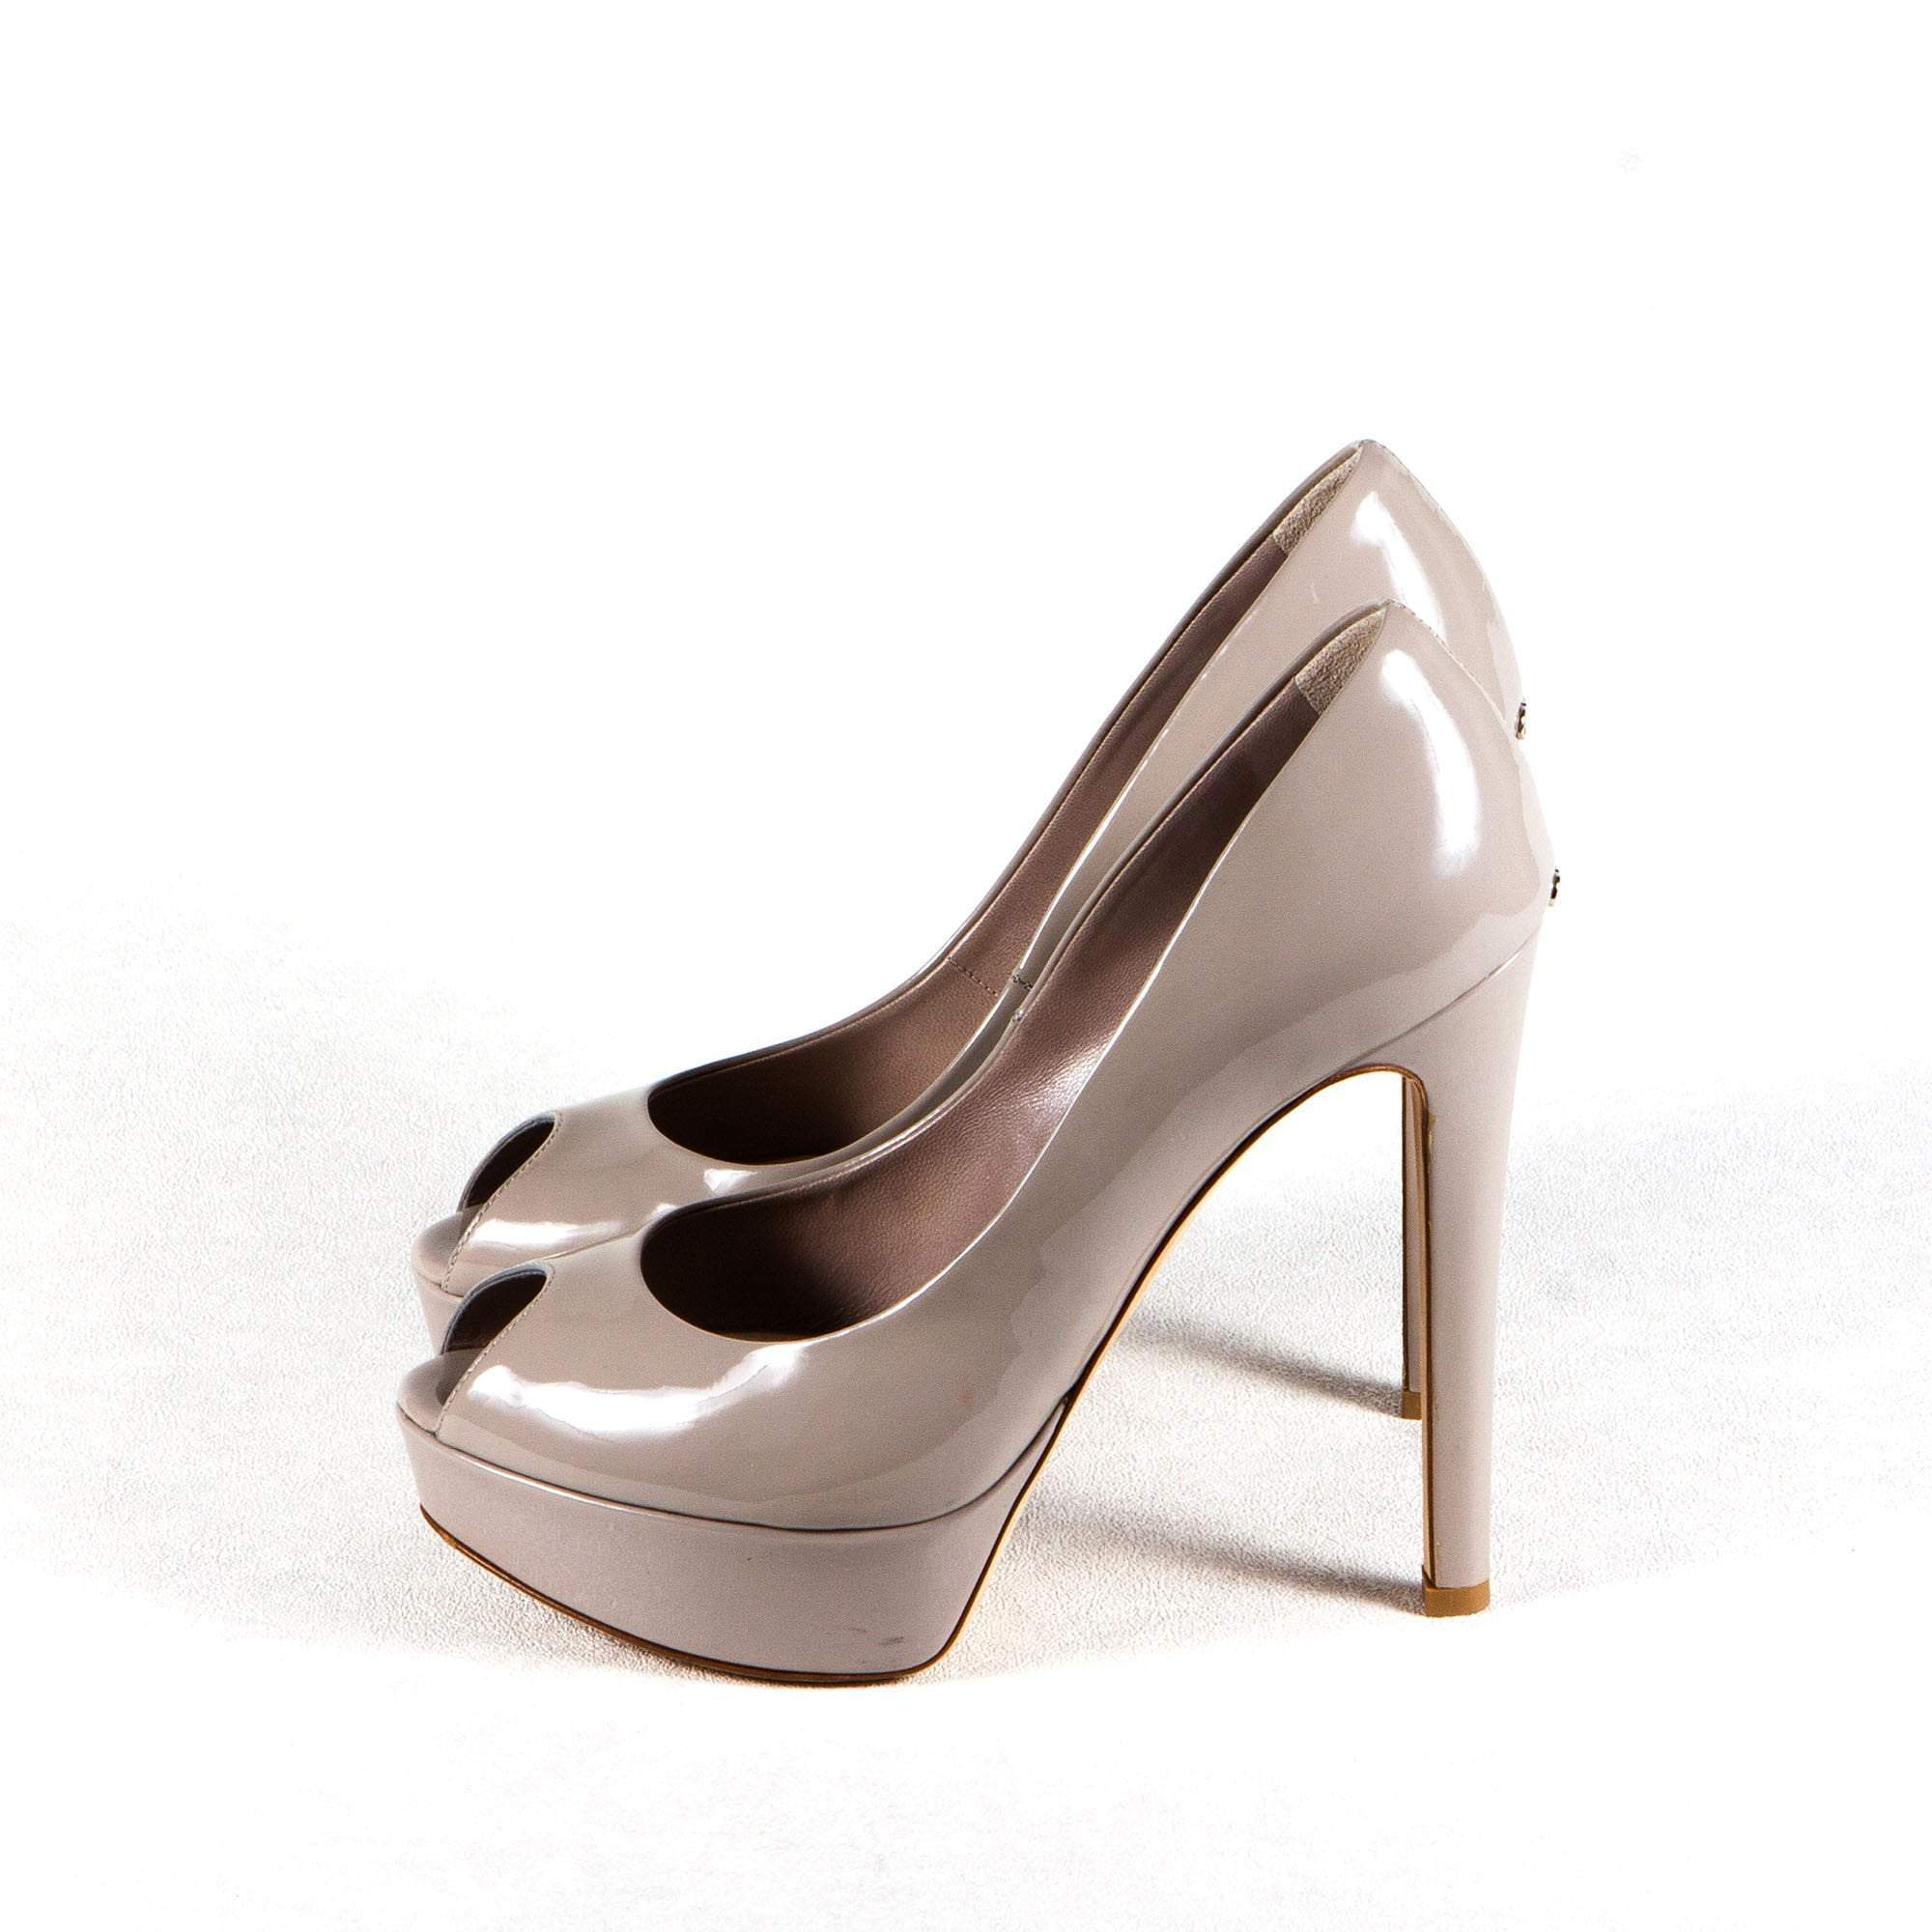 Christian Dior Patent Leather Peep Toe Platform Pumps